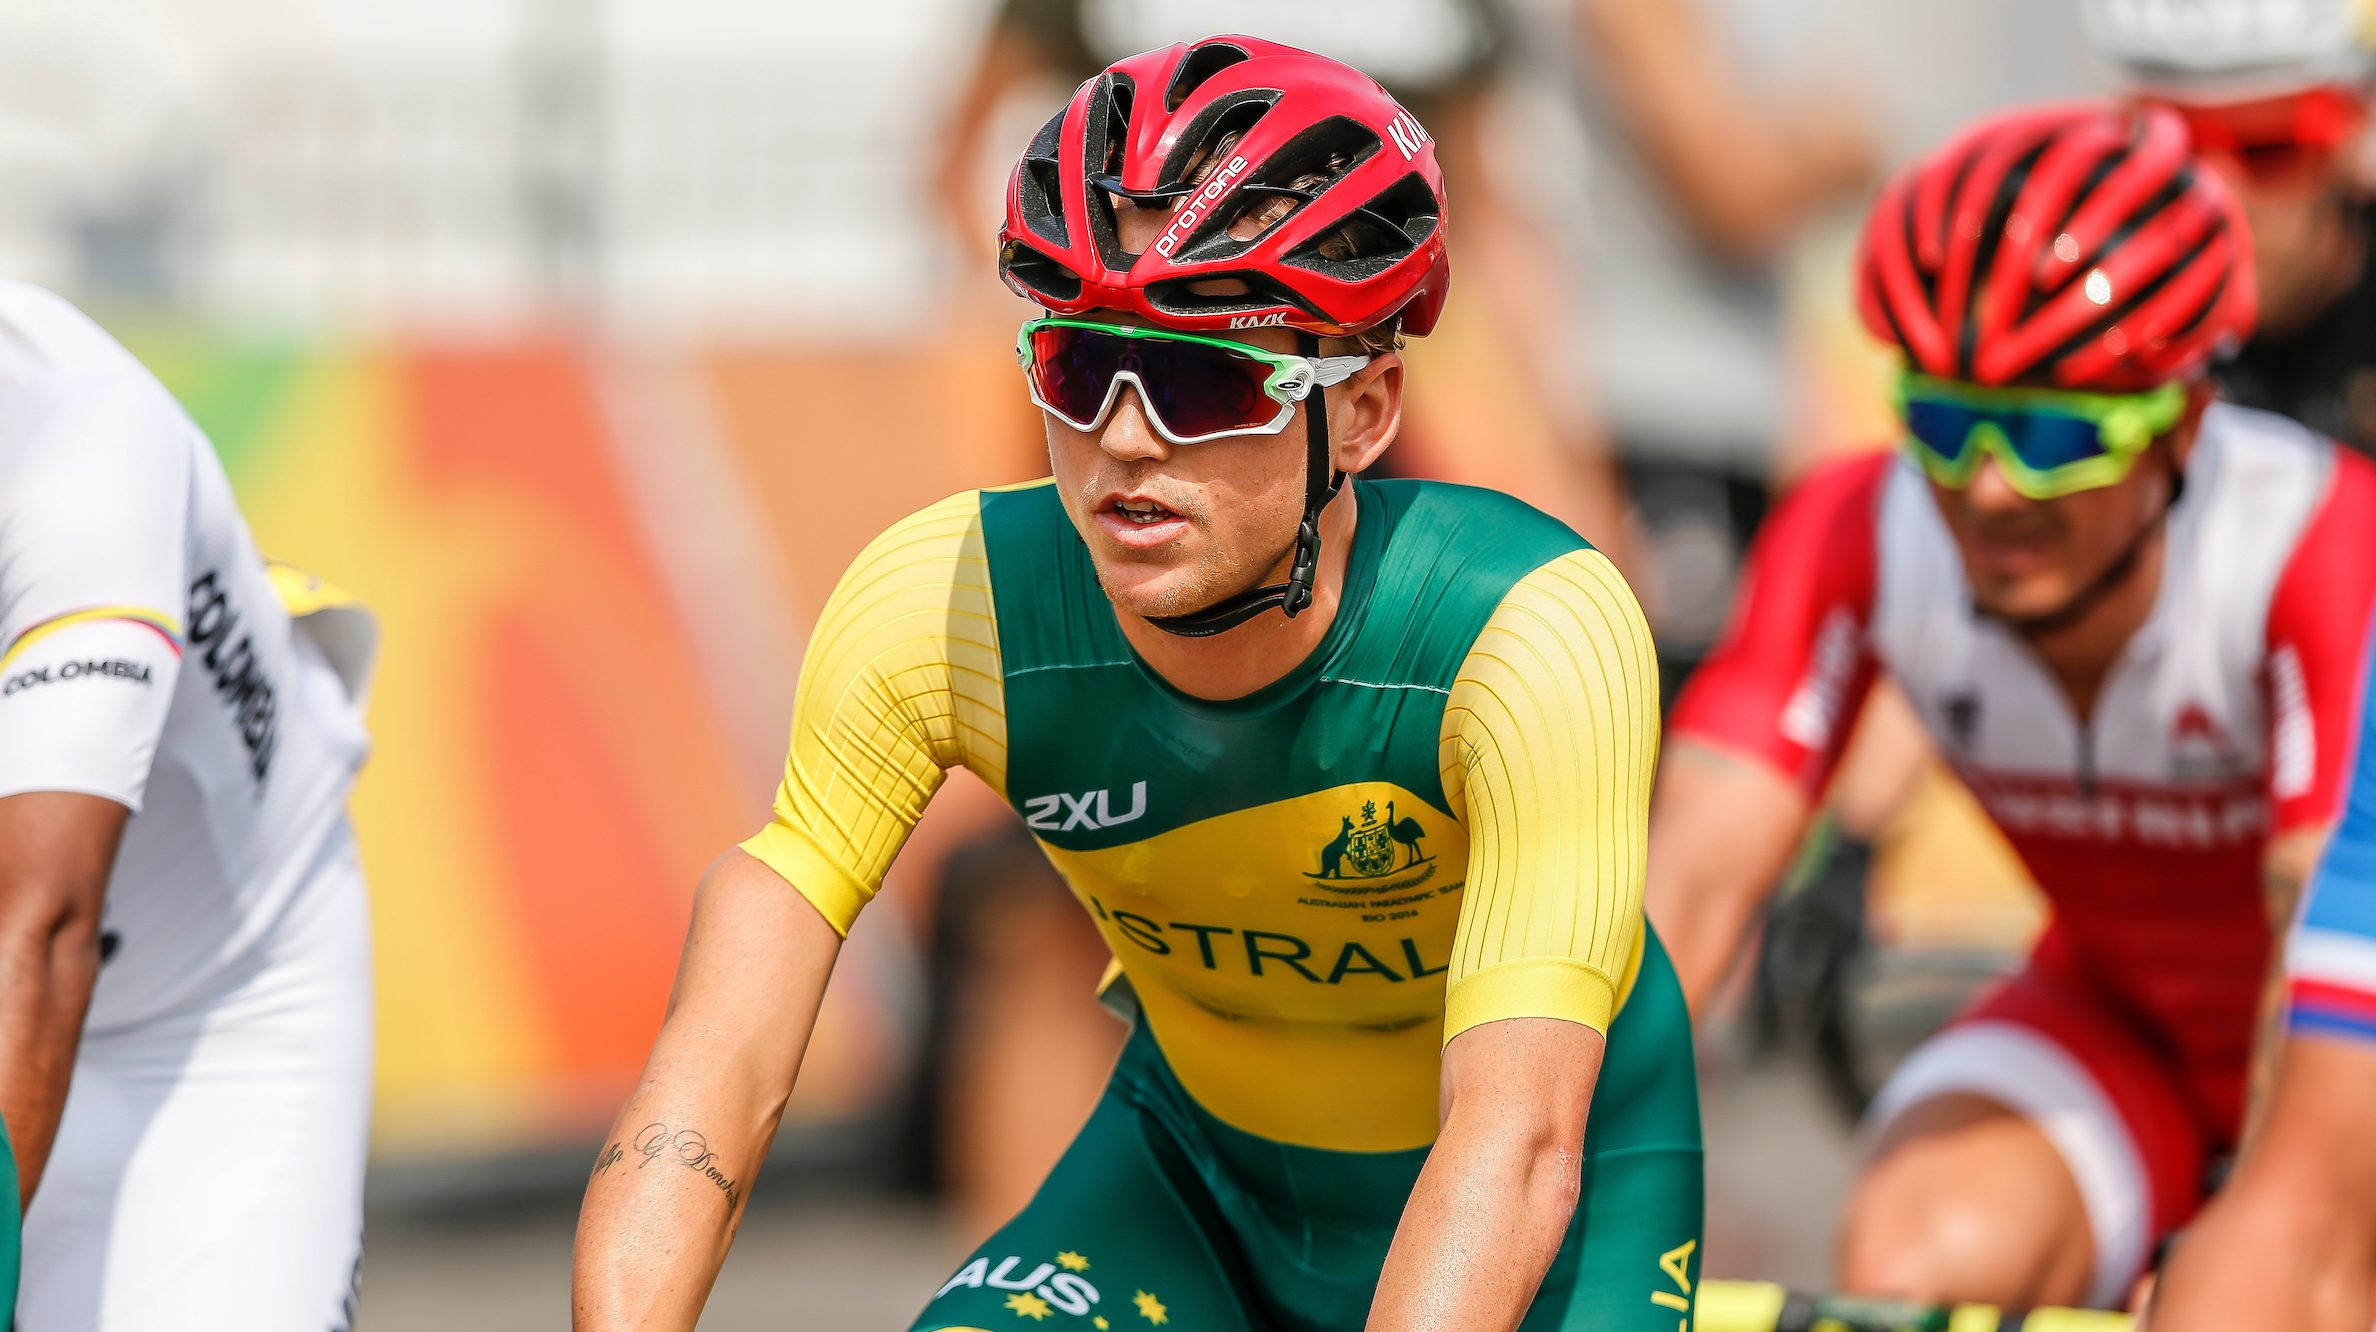 Cycling Australia introduces National Para-cycling Series